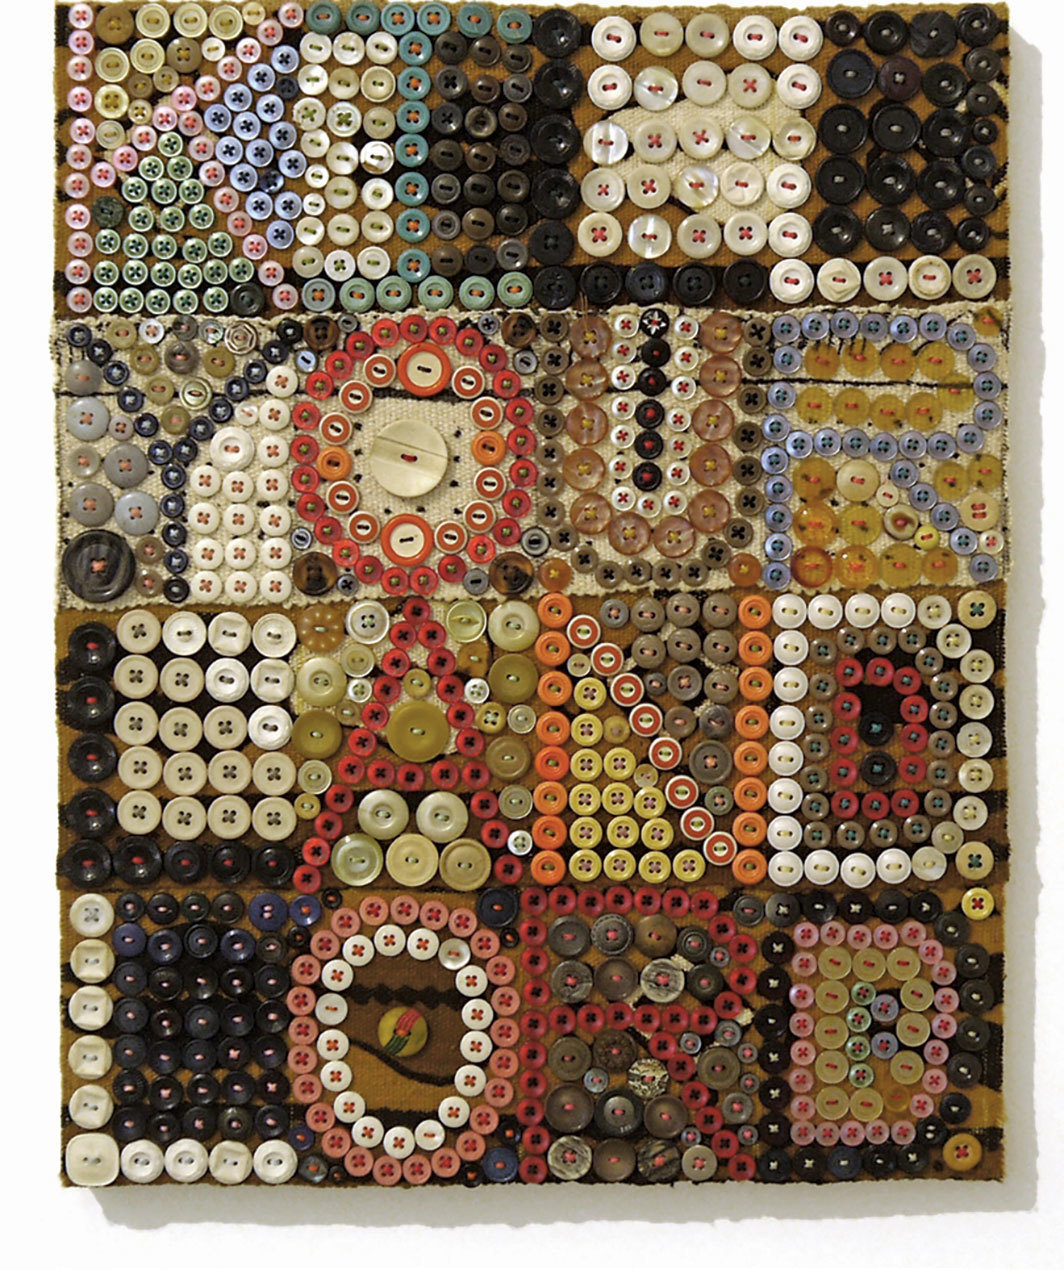 "Jeff Perrone, Kill Your Landlord, 2016, mud cloth, buttons, and thread on canvas, 16 × 12""."